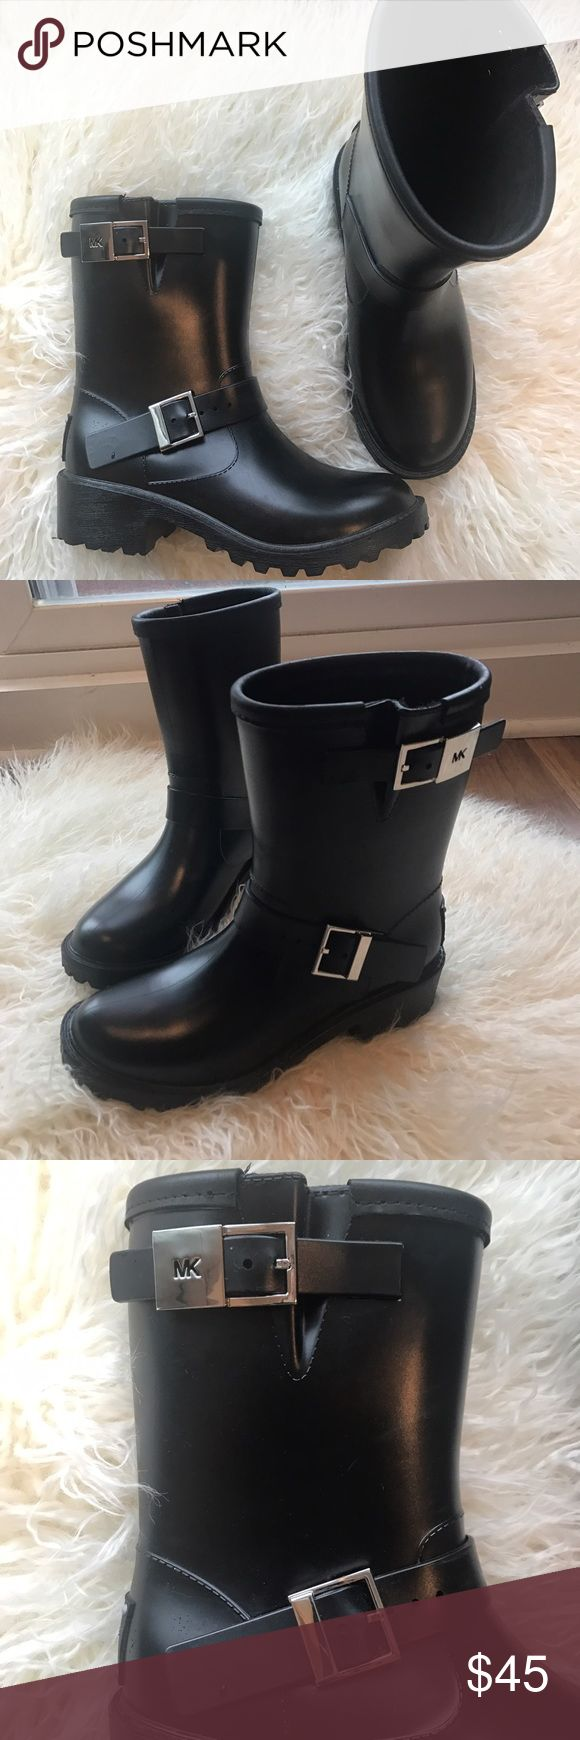 Michael Kors Combat Rain Boots Michael Kors Combat Rain Boots. Fashionable and fun rain boots with silver hardware buckles. Very comfortable and super cute when you have to wear rain boots! Worn once and in great condition. Michael Kors Shoes Winter & Rain Boots